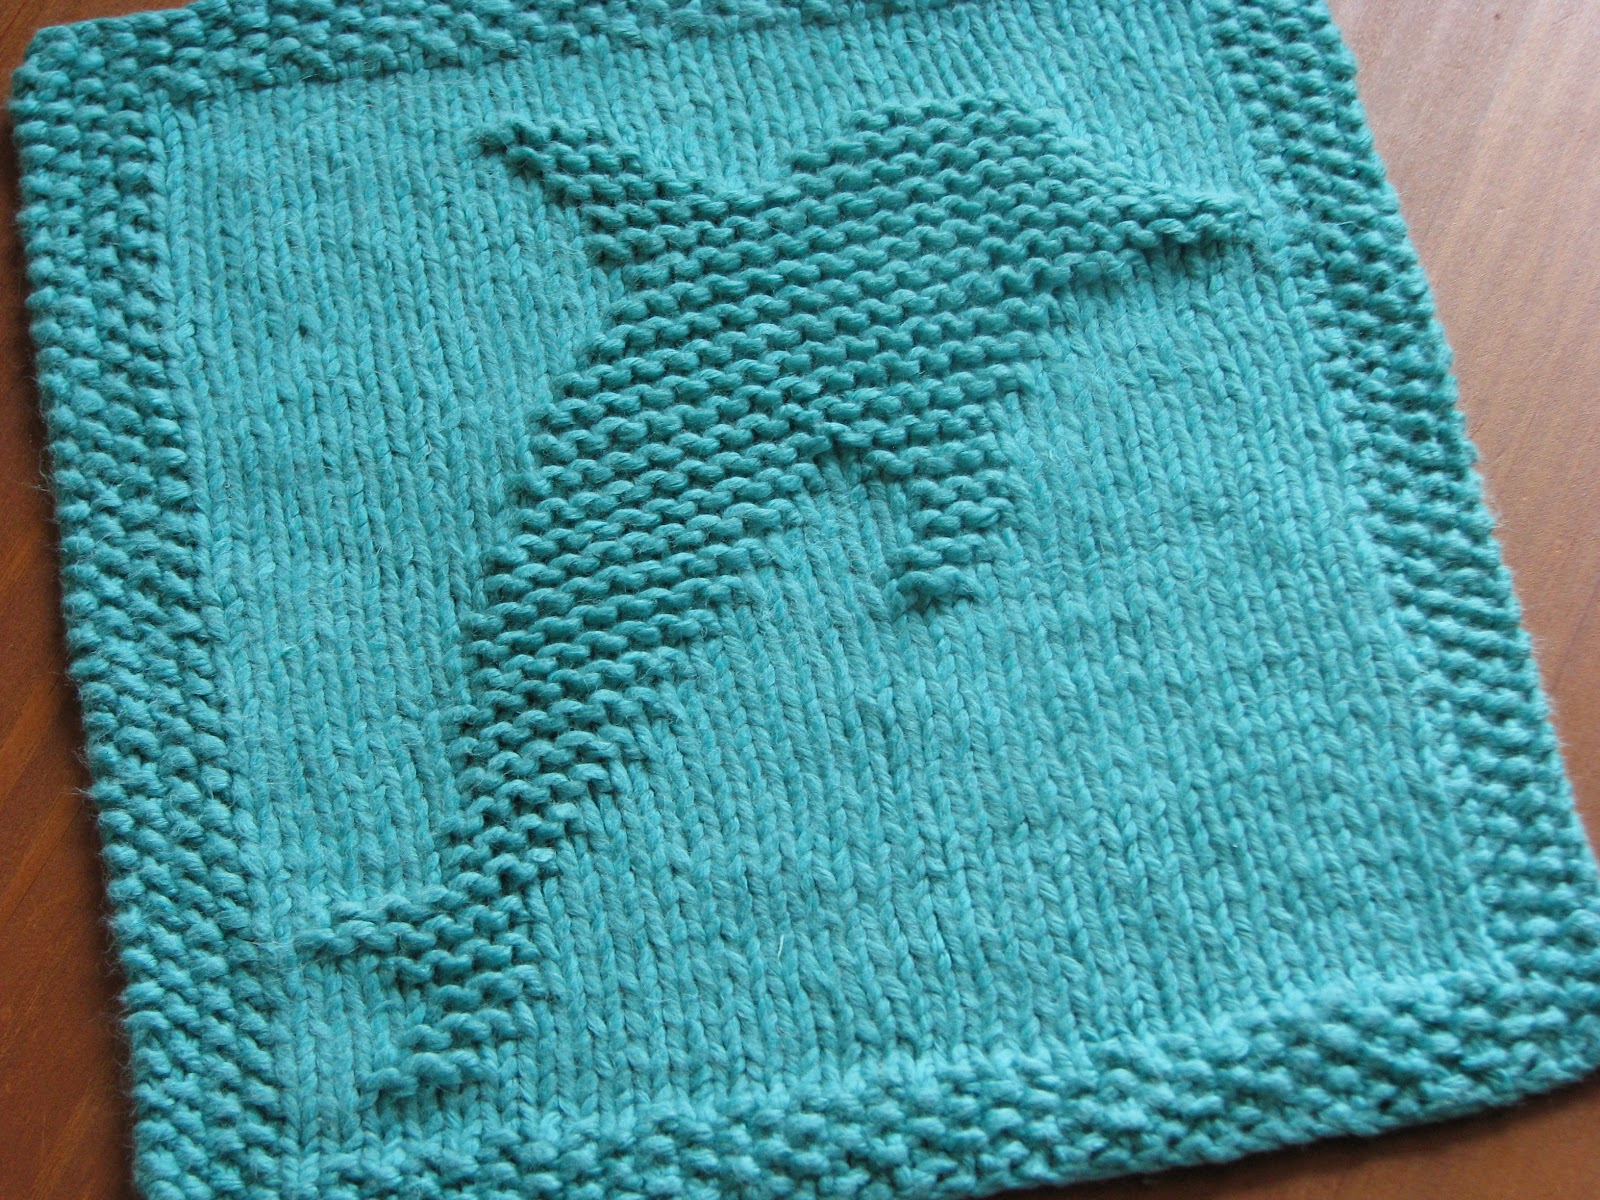 How To Knit Dishcloths Free Patterns : One Crafty Mama: Dolphin Dishcloth